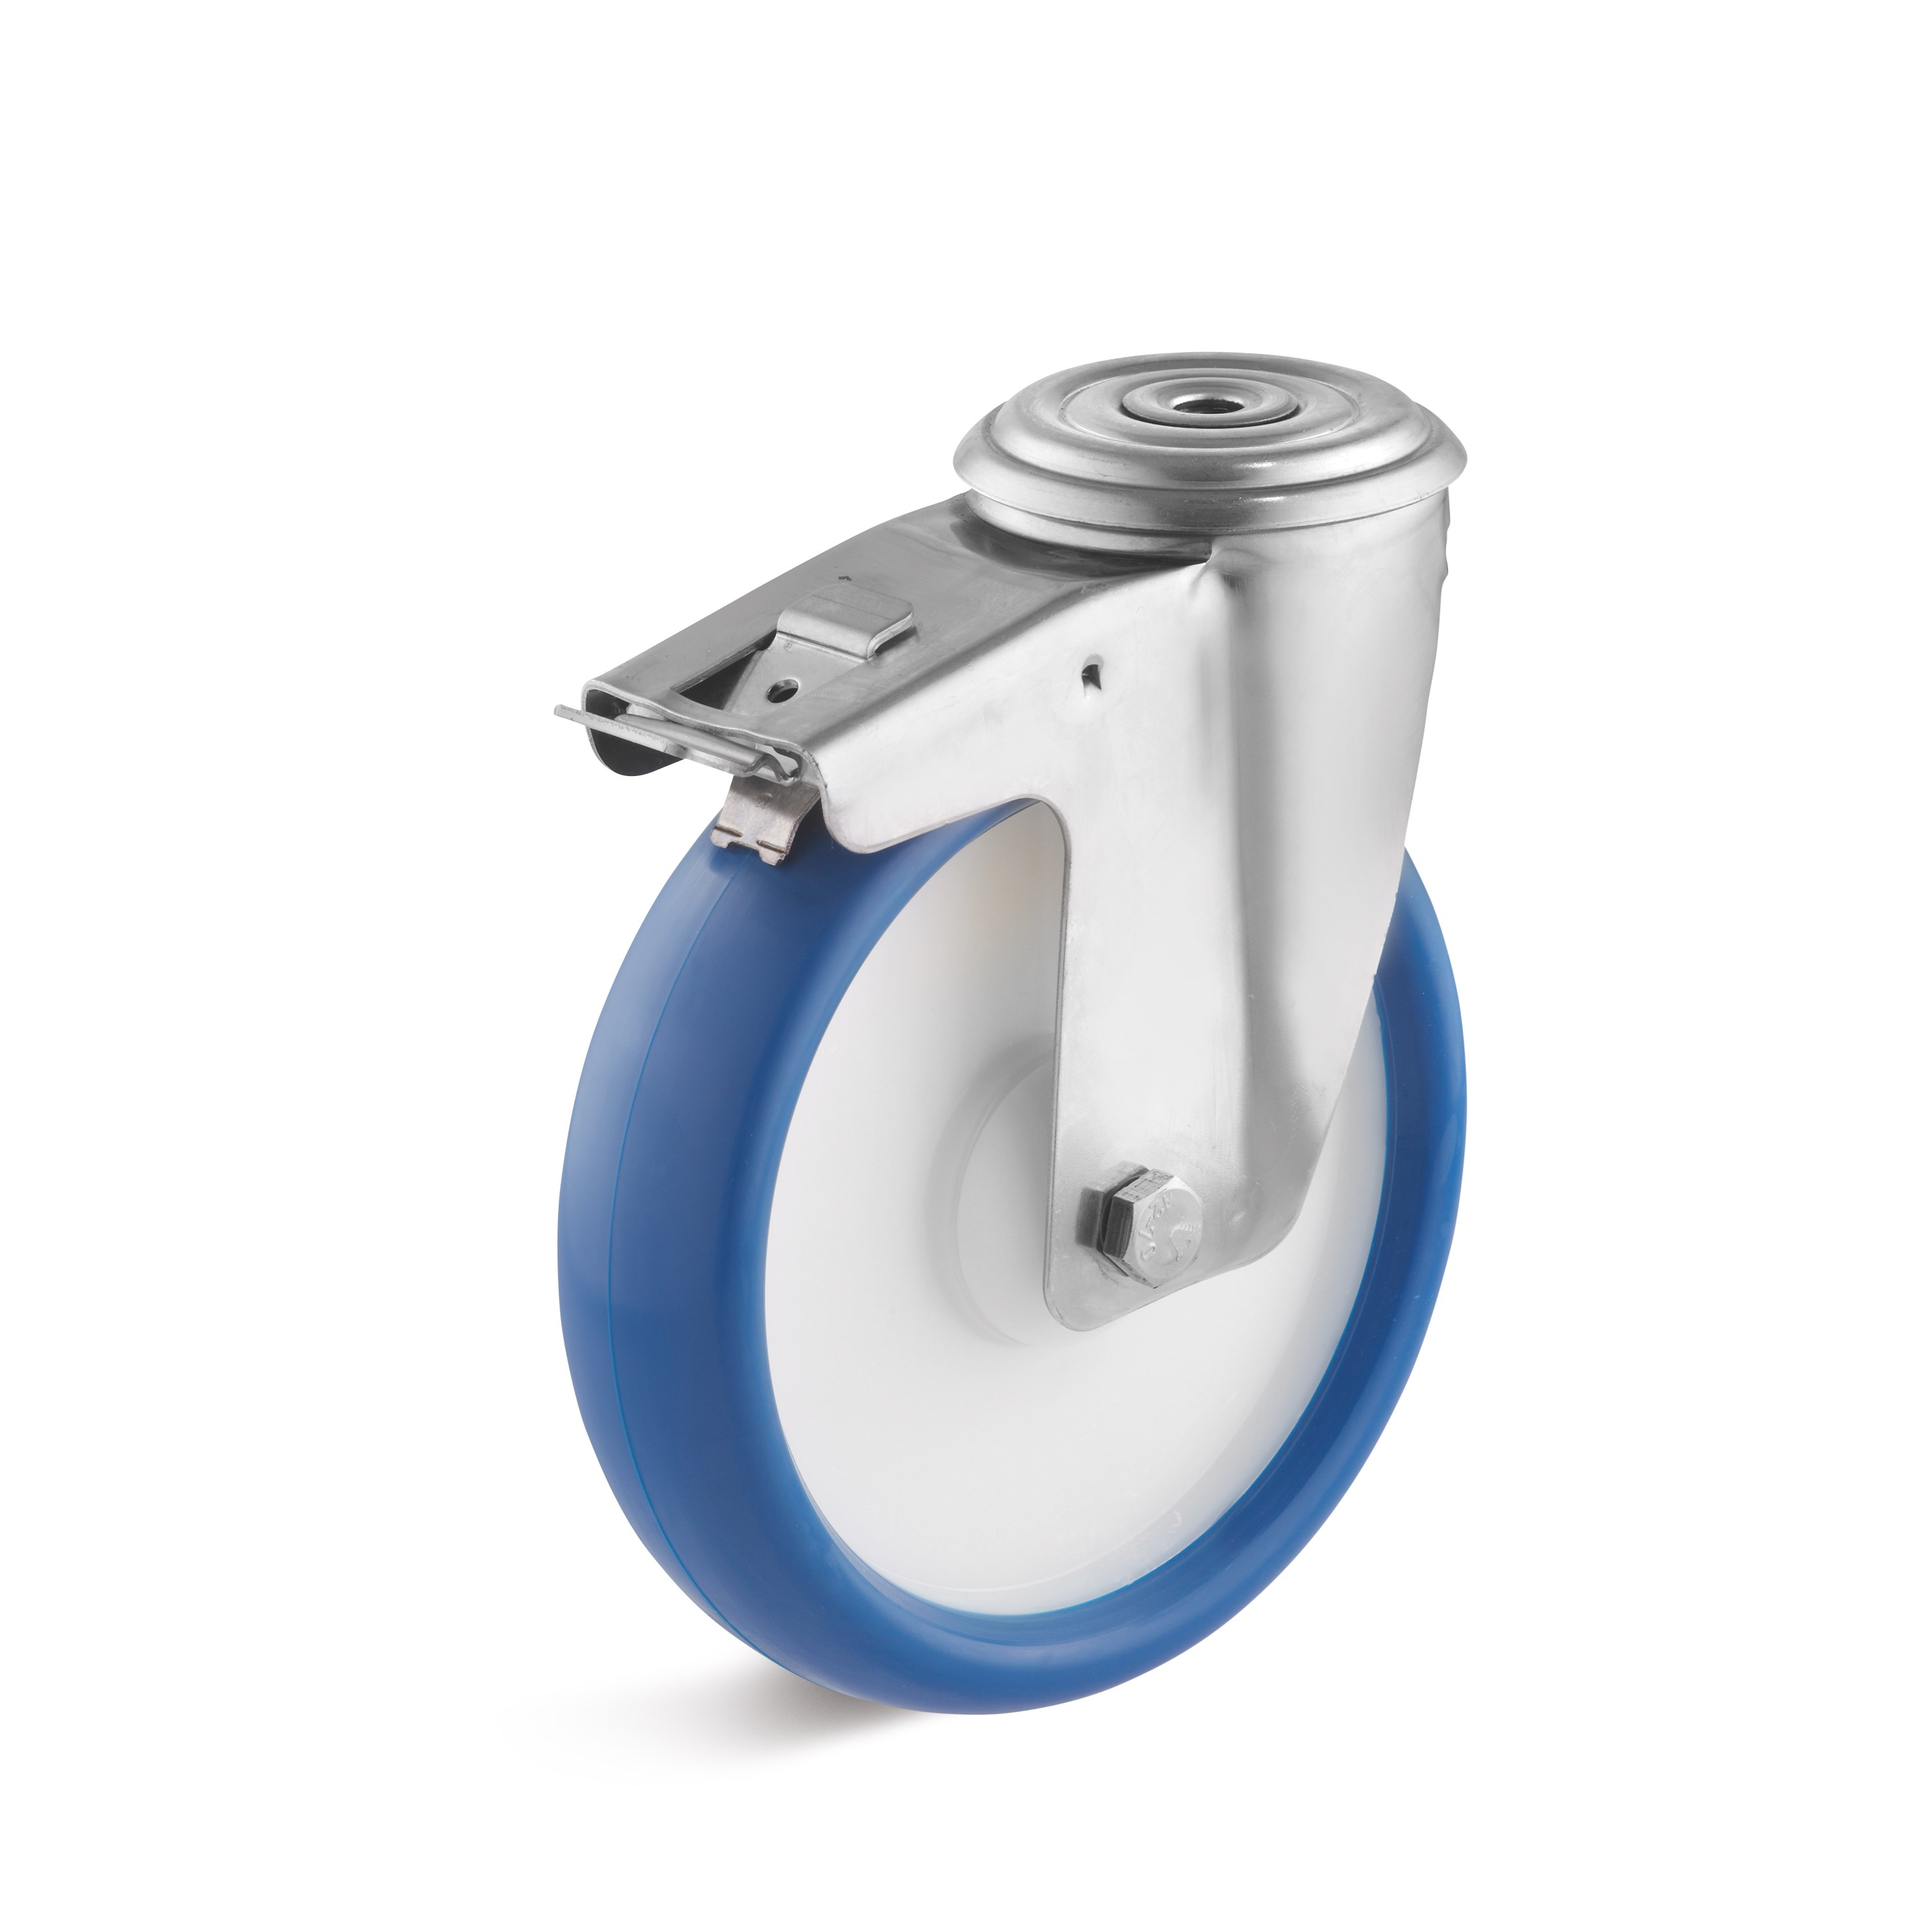 Stainless steel swivel castor with back hole attachment and double stop, polyurethane wheel